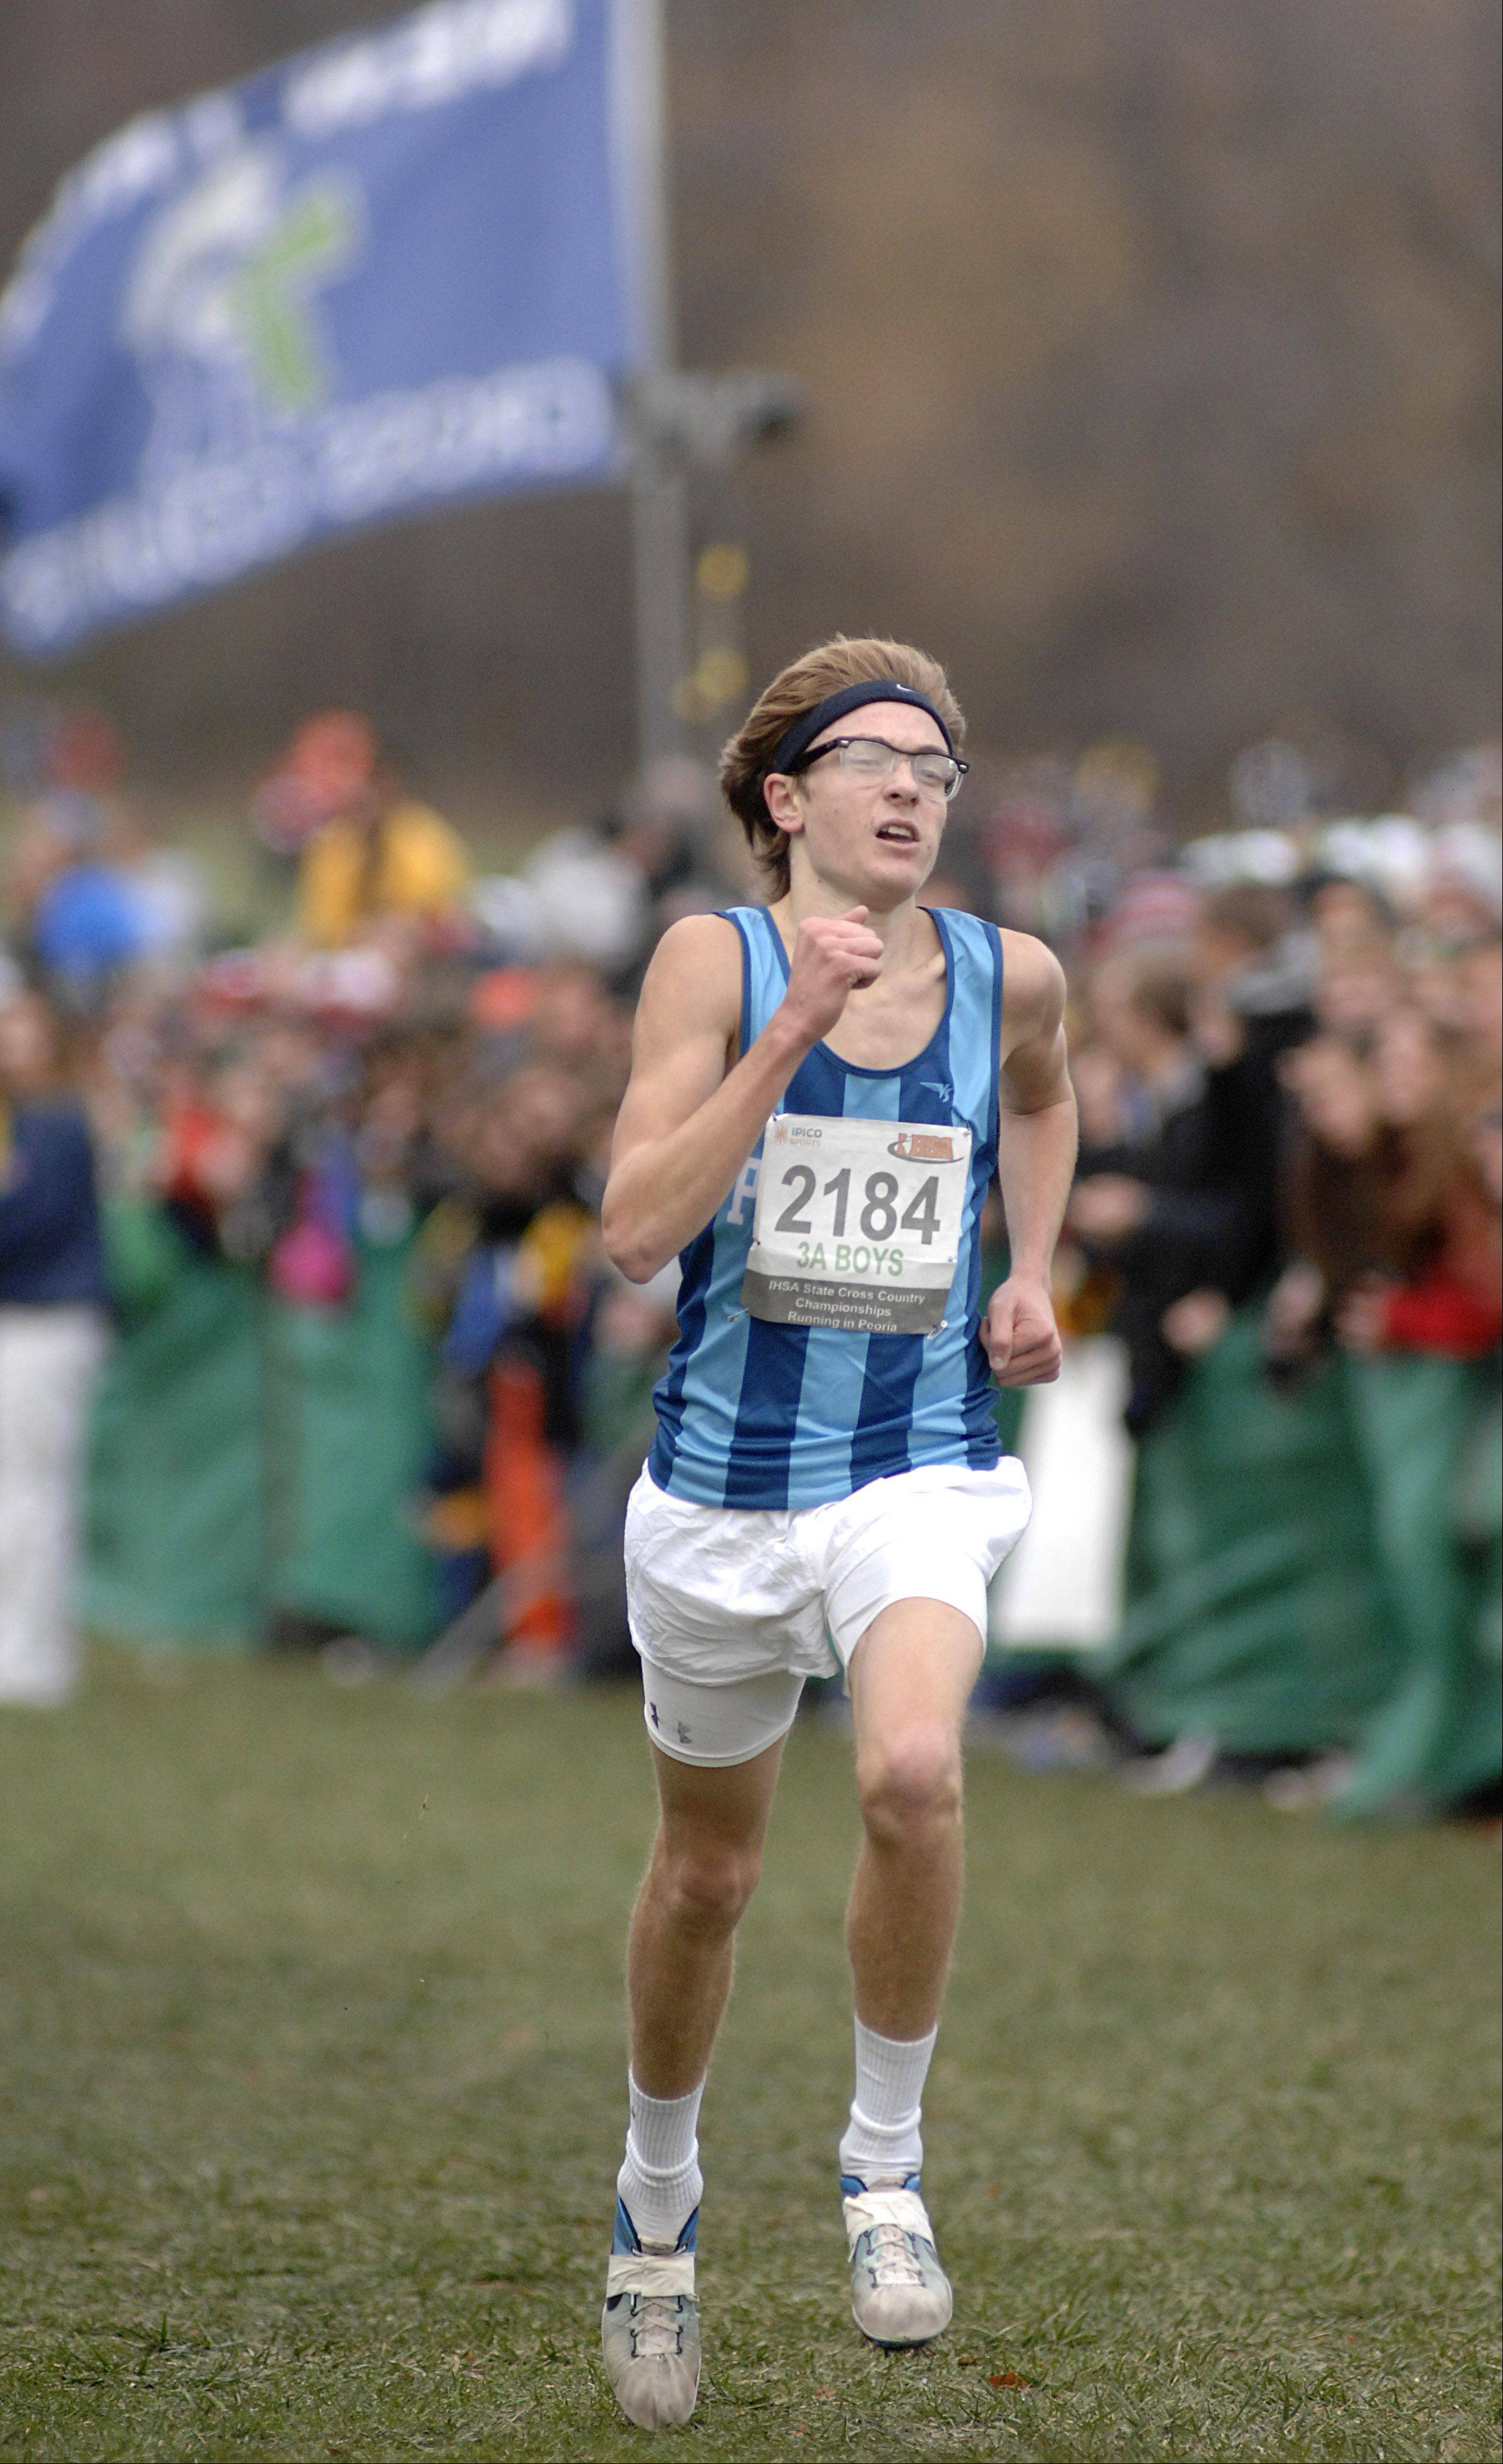 Prospect's Quentin Shaffer approaches the finish line in the state cross country 3A final in Peoria and takes second place on Saturday, November 3.